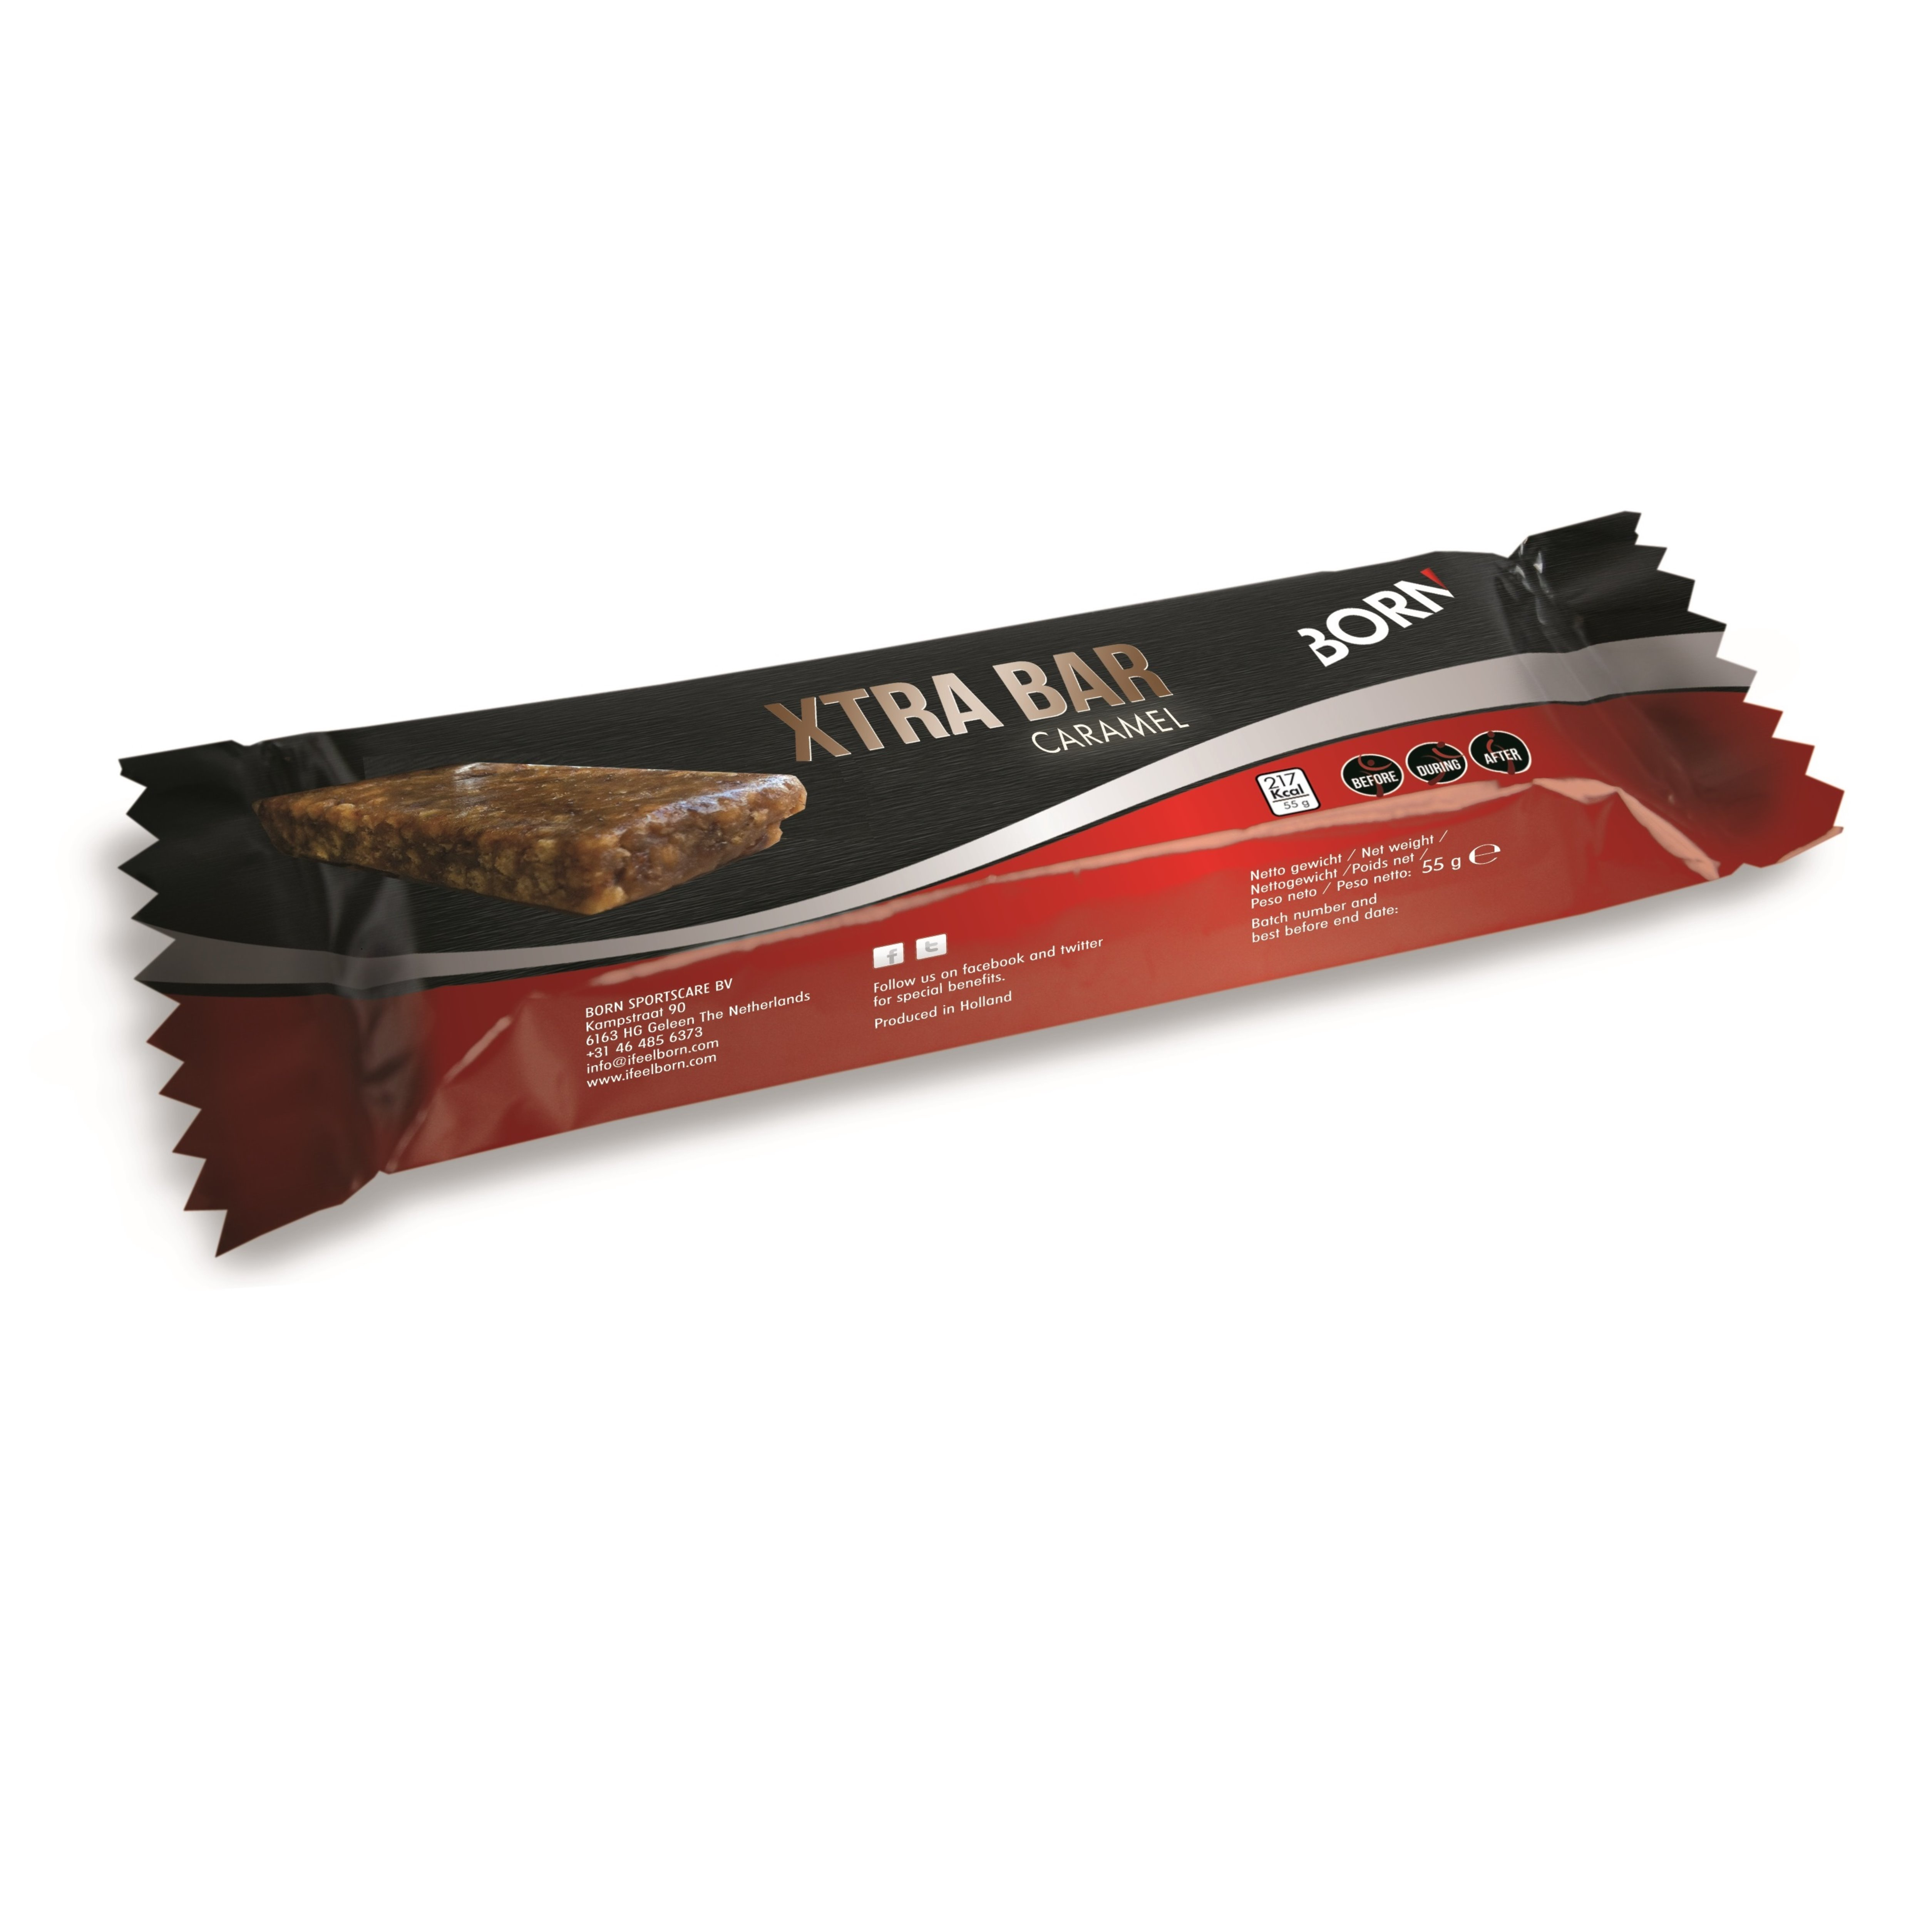 BORN Xtra Bar Caramel (55g)